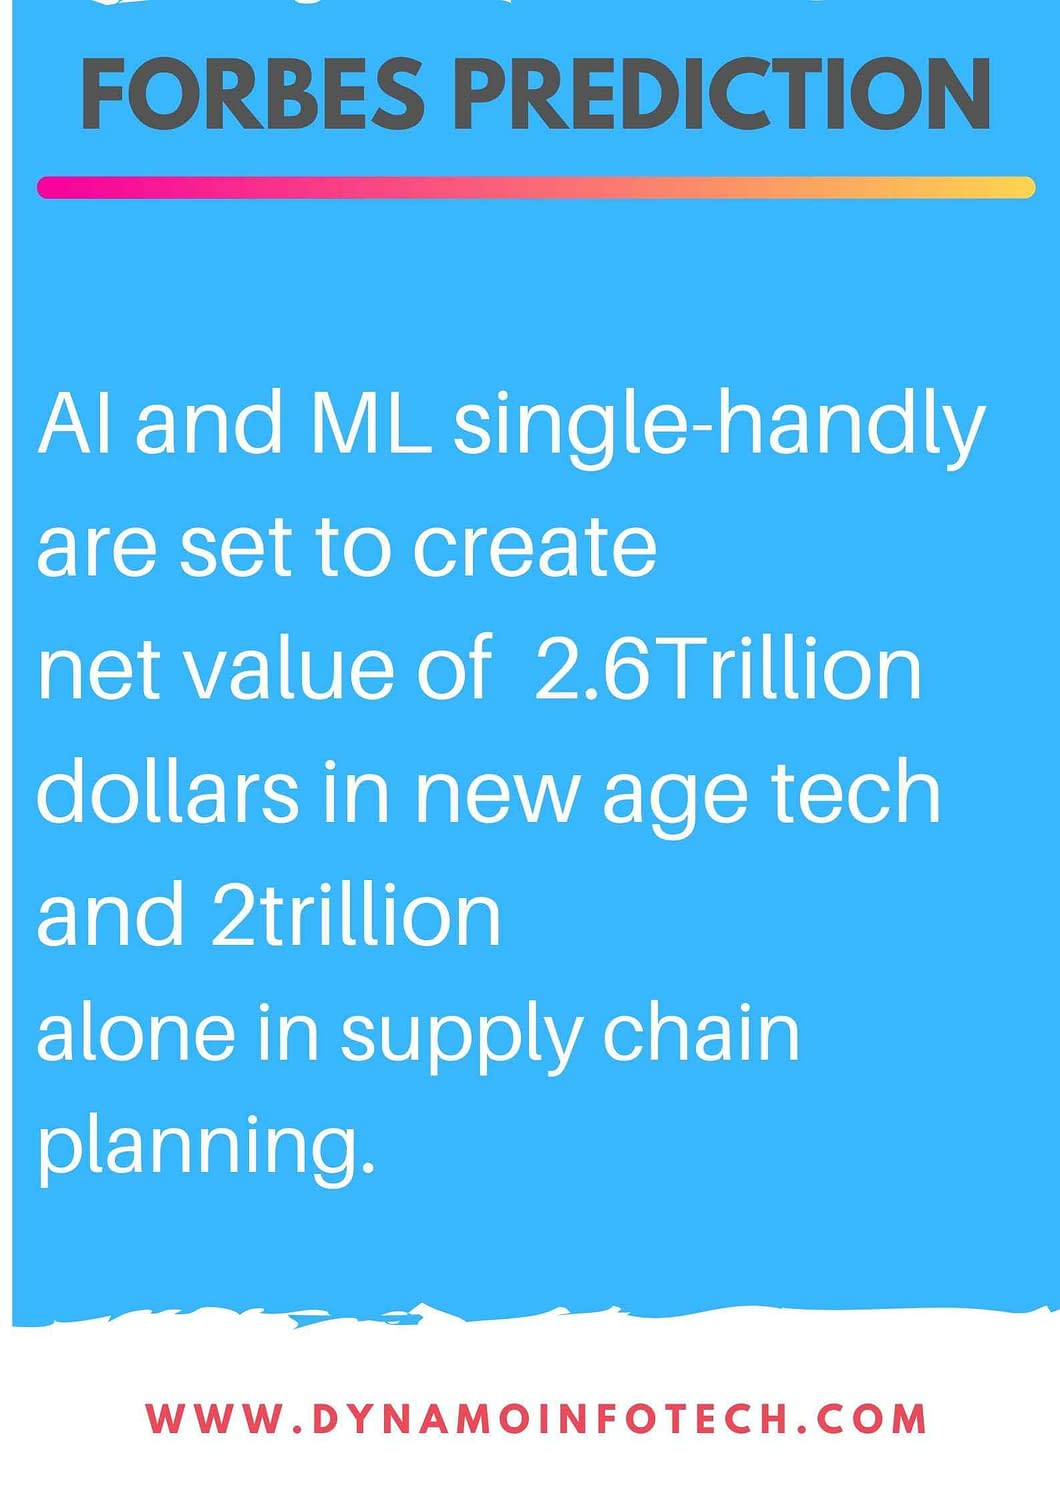 forbes prediction on machine learning and artificial intelligence for the year 2020